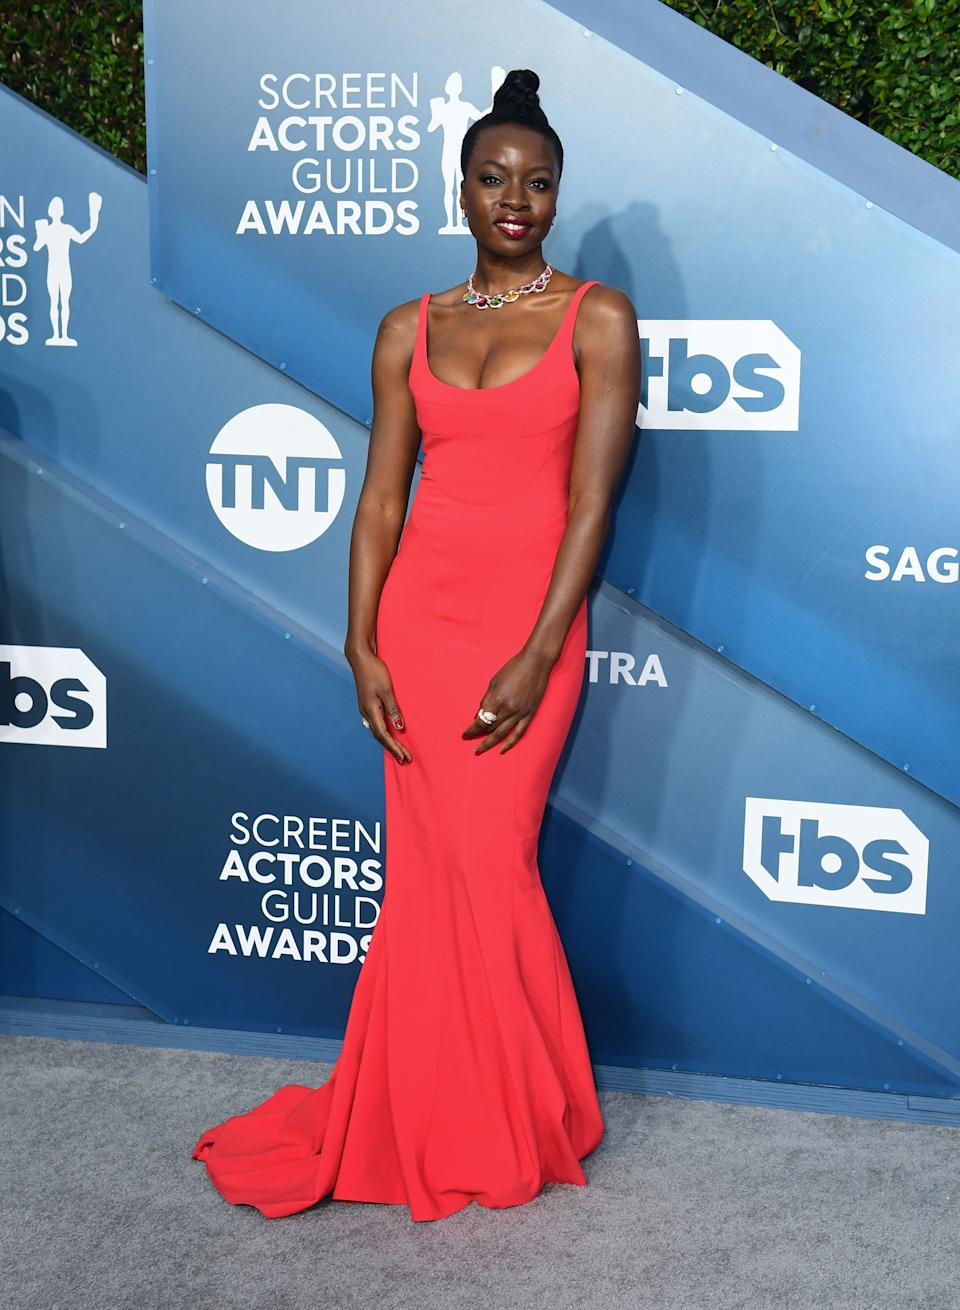 """<h2>Danai Gurira</h2><br>Danai Gurira is looking red hot tonight in this fitted red gown paired with one hell of a technicolor necklace.<br><span class=""""copyright"""">Photo by FREDERIC J. BROWN/AFP via Getty Images.</span>"""